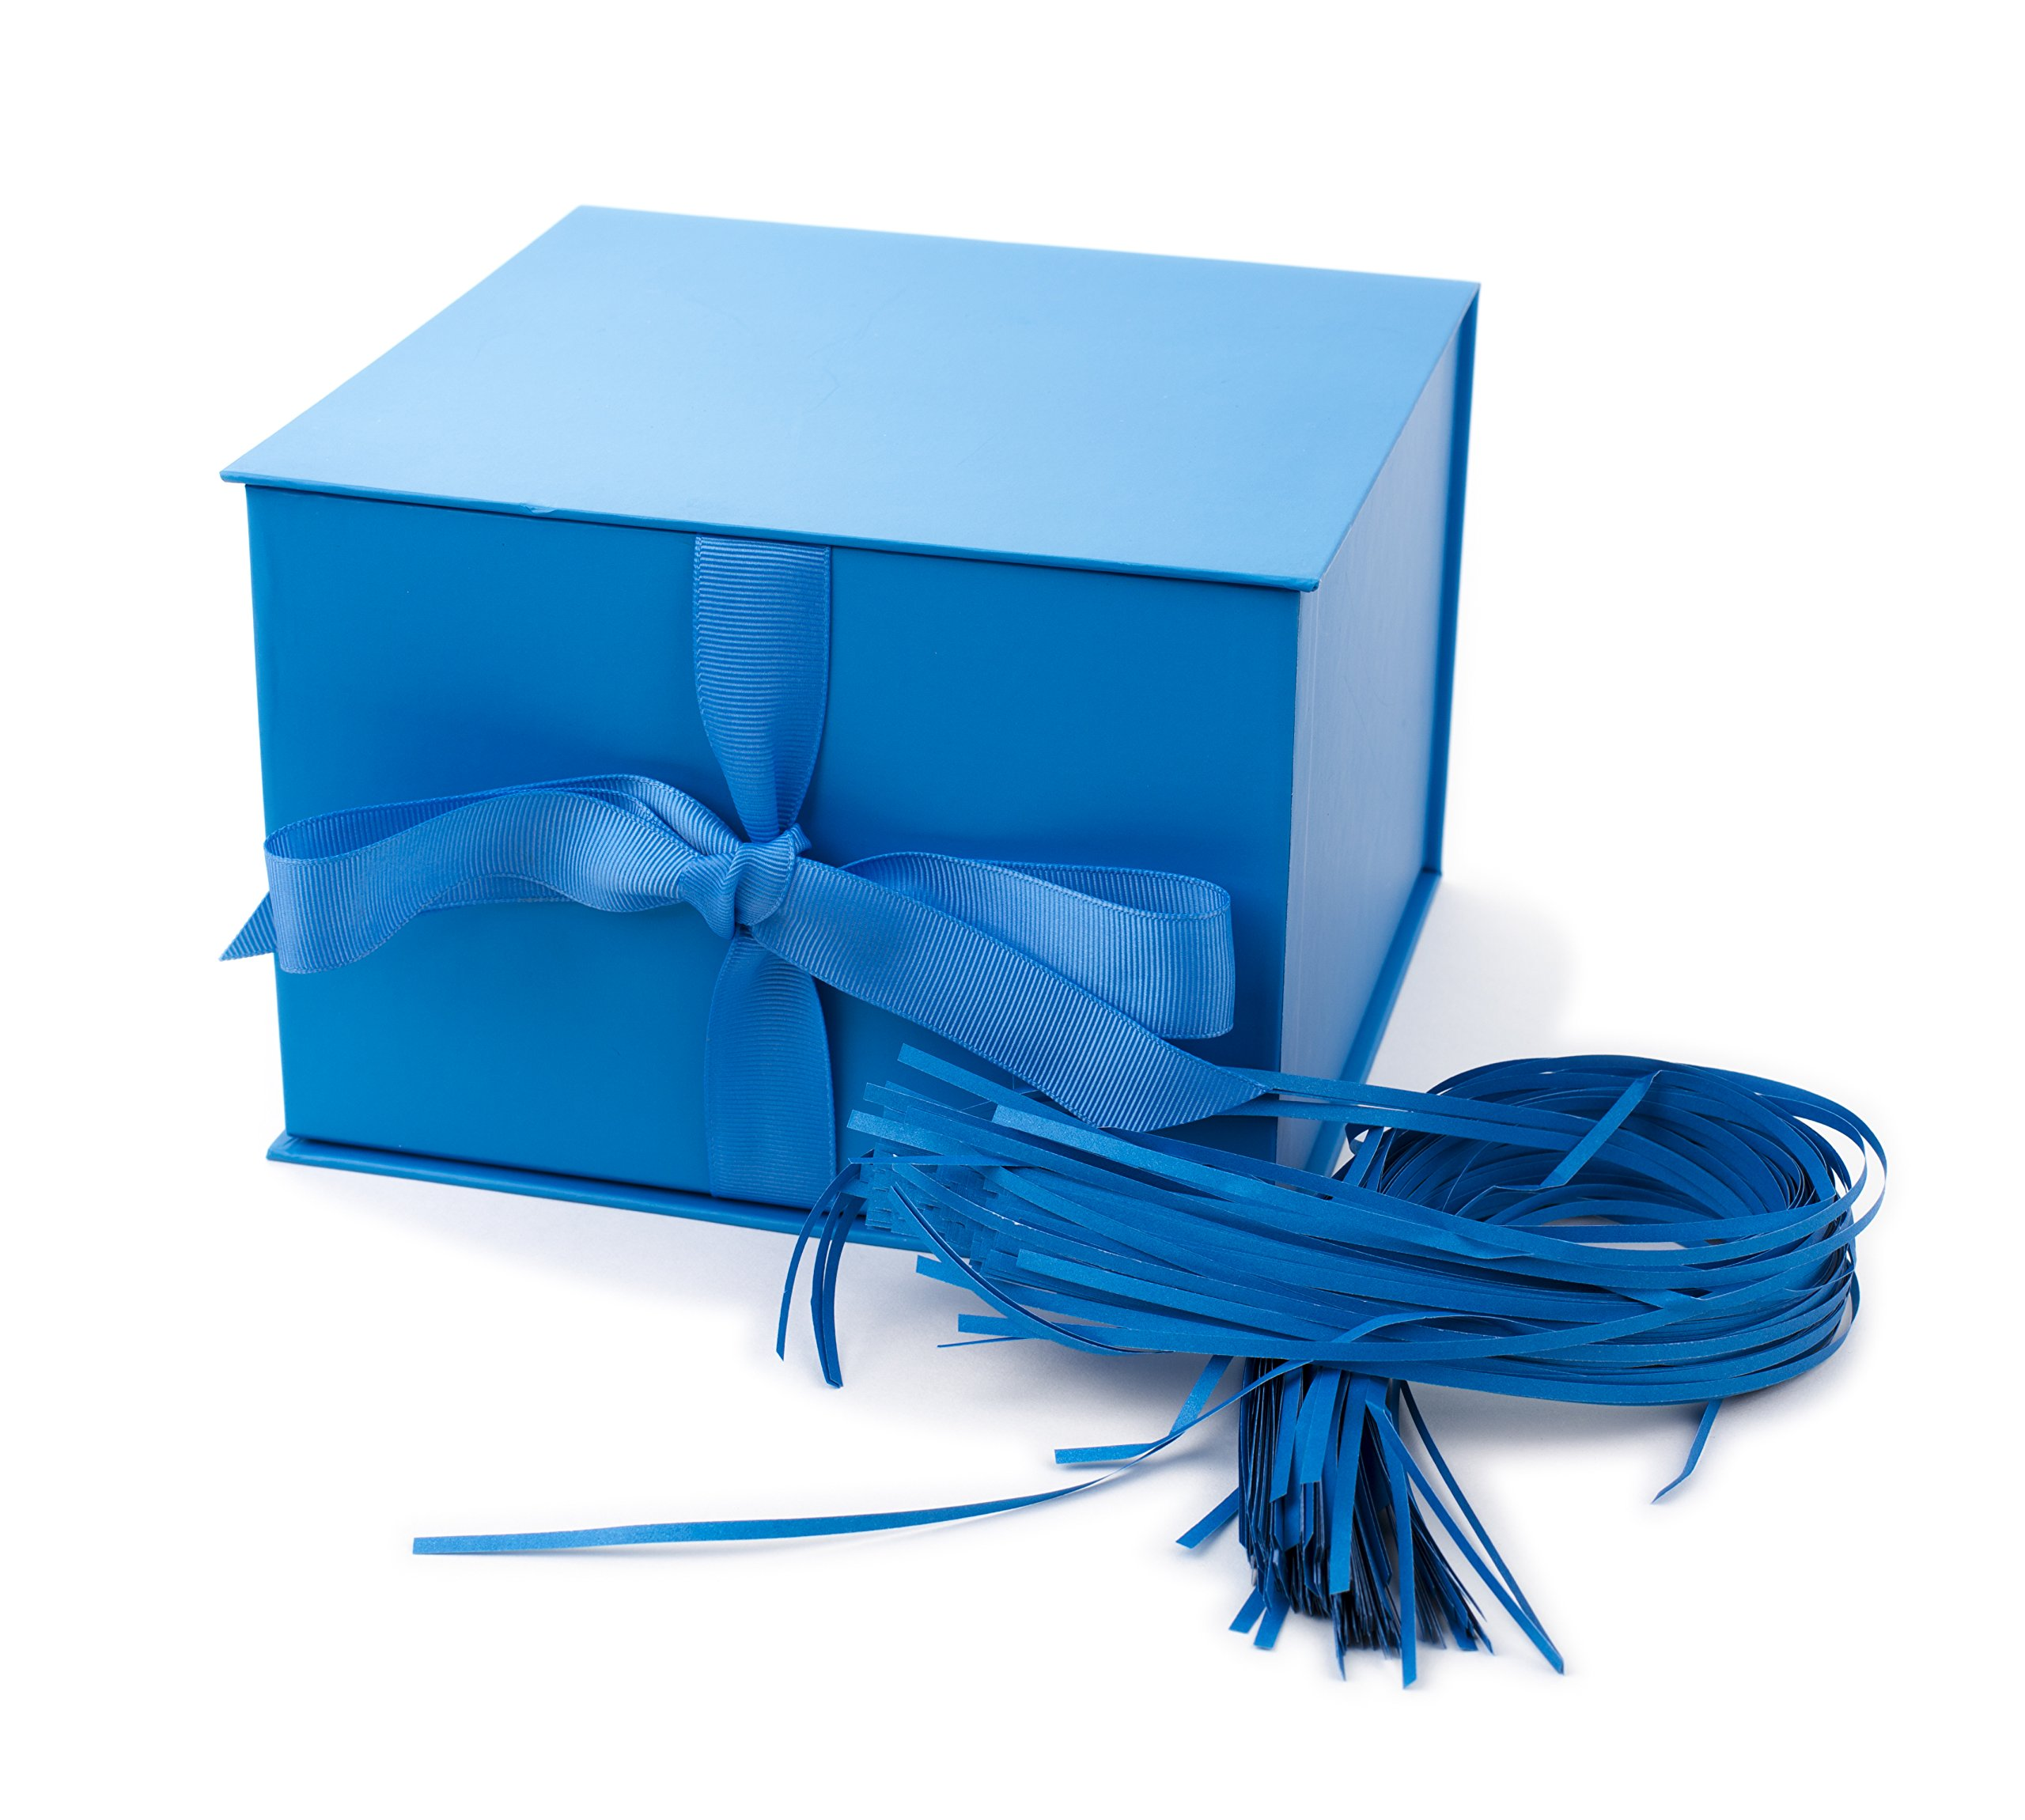 """Hallmark 7"""" Gift Box with Lid and Paper Fill (Blue) for Father's Day, Birthdays, Baby Showers, Hanukkah, Christmas, Holidays and More"""